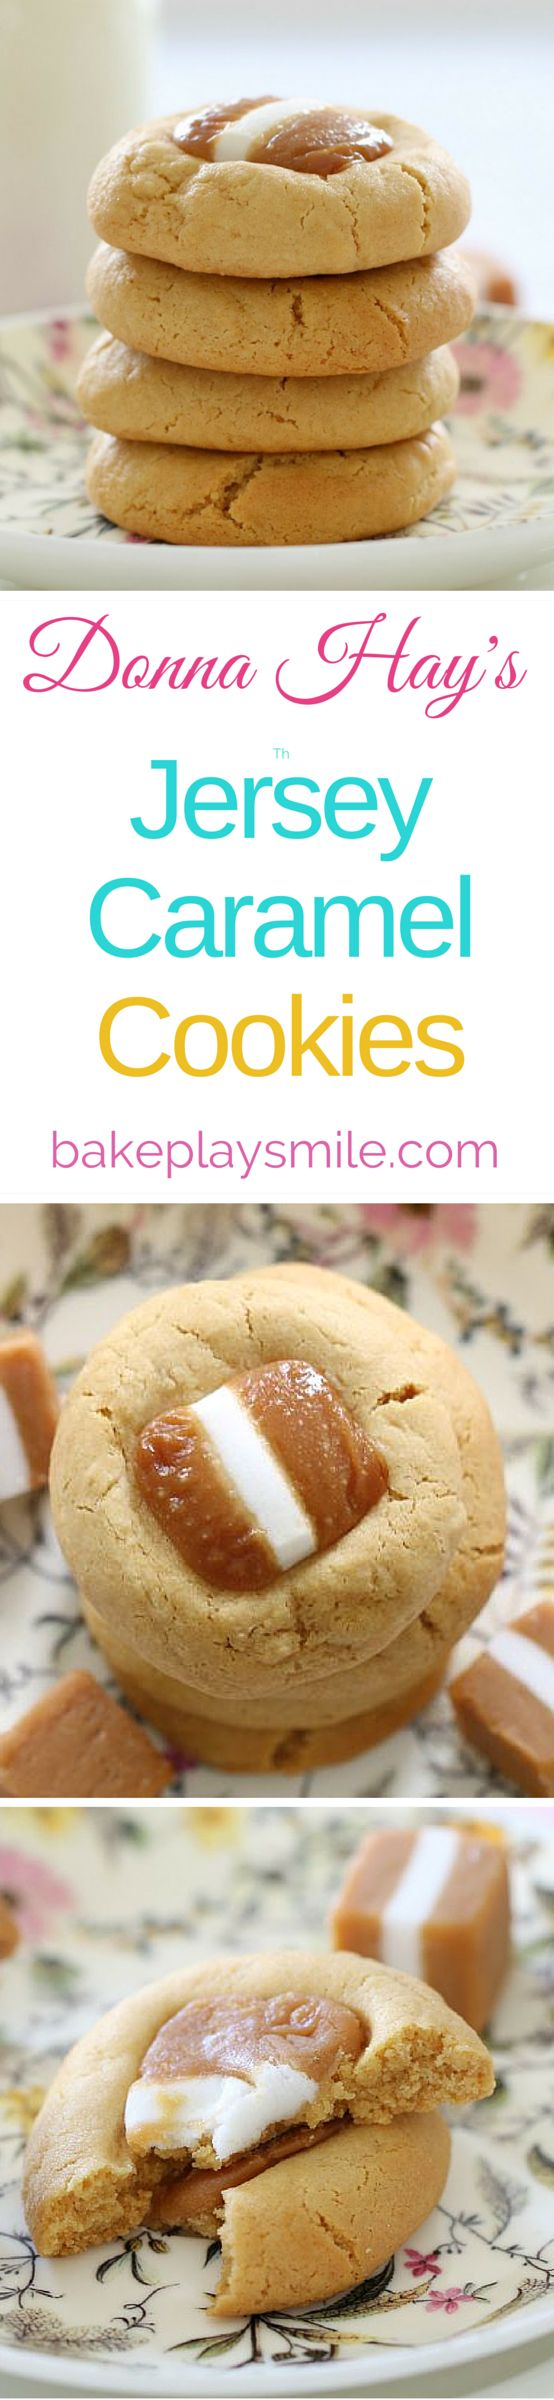 The melt and mix caramel cookies are the easiest things in the world to make.... and they look amazing!!! | Bake Play Smile #caramel #cookies #donnahay #recipe #easy